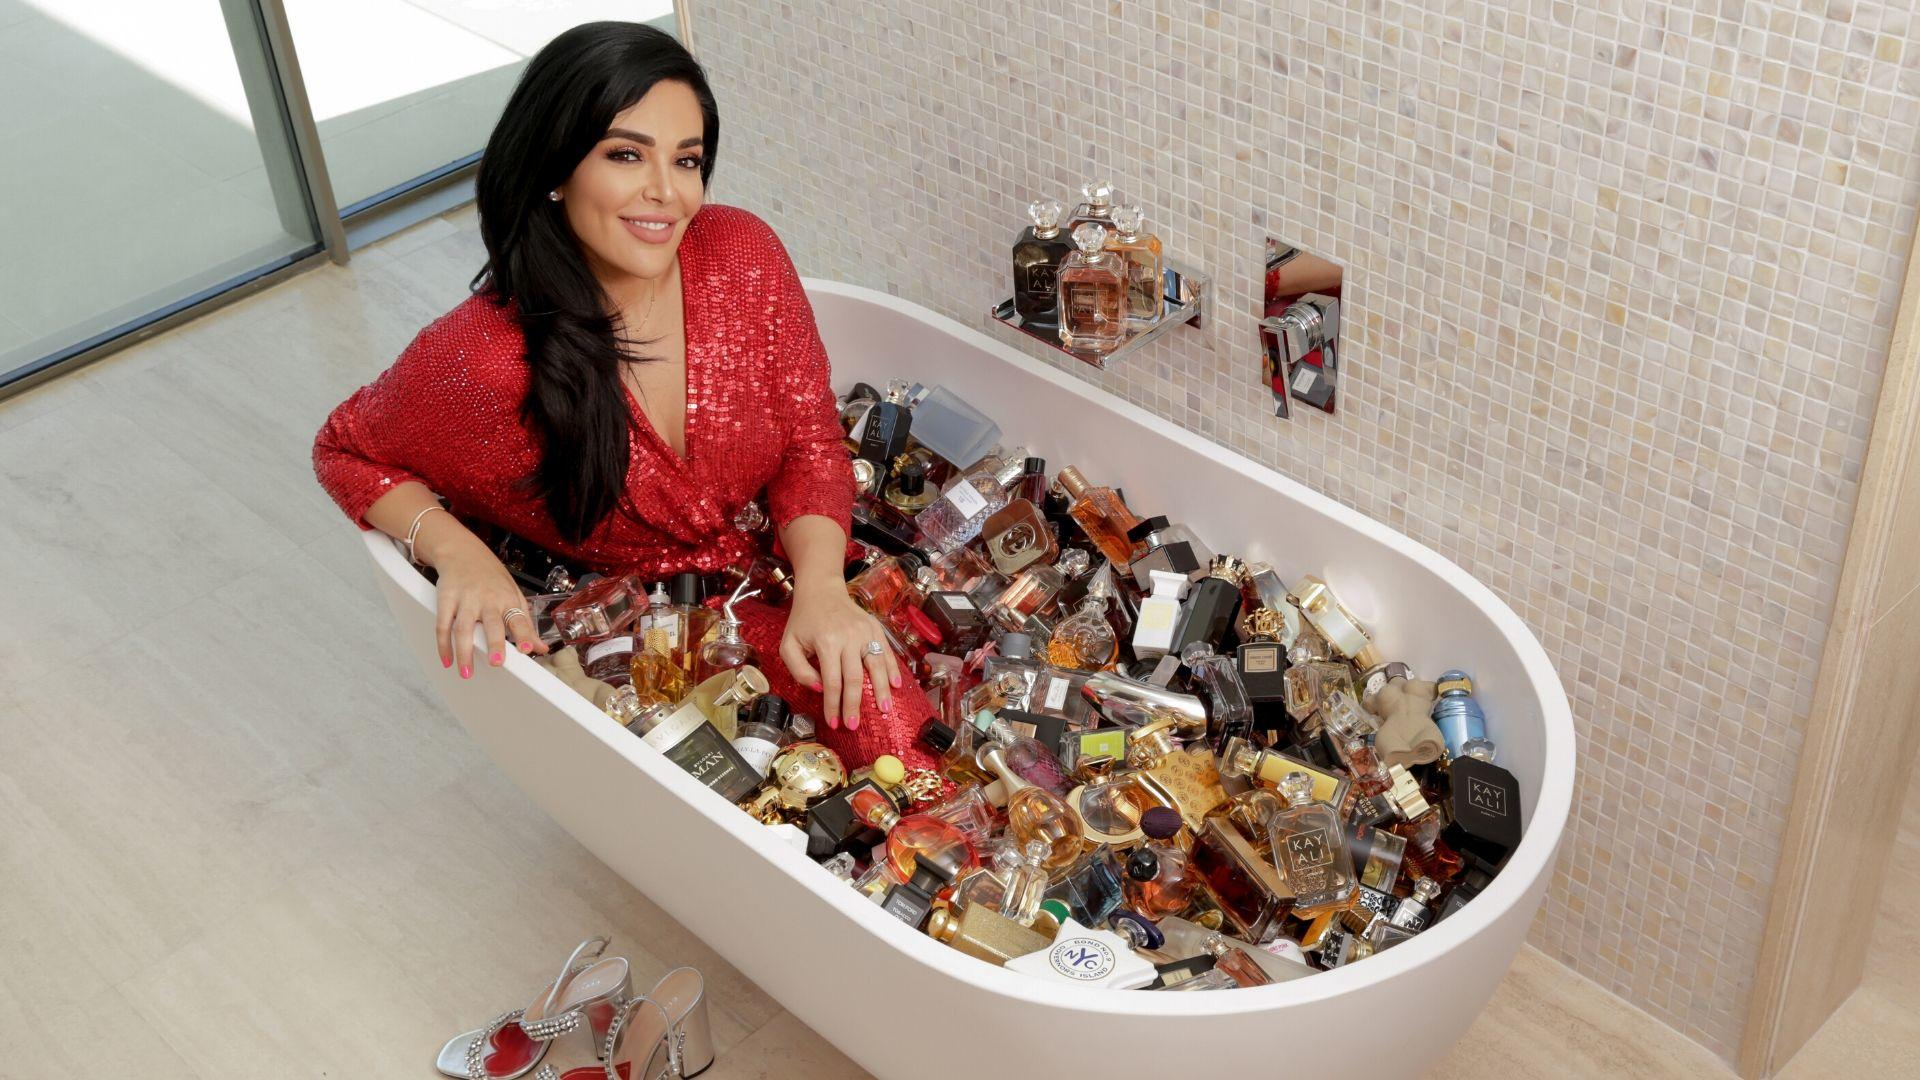 Beauty Diaries: Mona Kattan Reveals How To Select A Wedding Day Fragrance And Shares Her Secret Beauty Hack